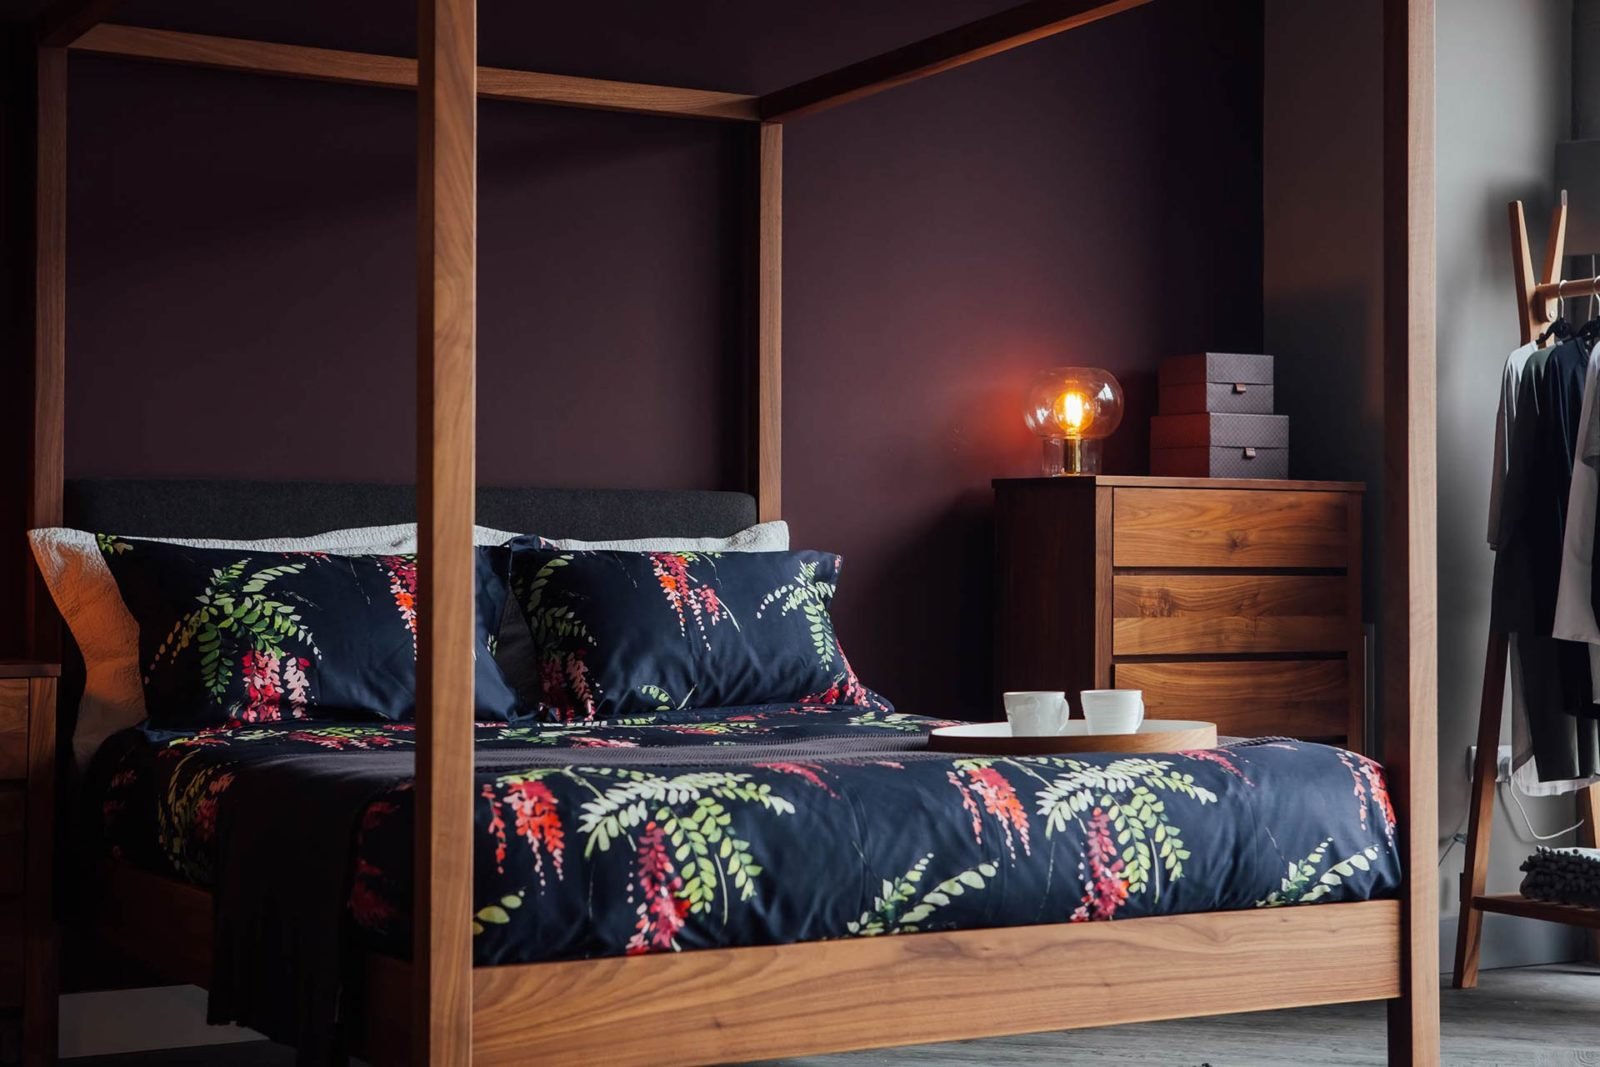 A closer view of the Highland classic 4 poster bed with padded wool covered headboard